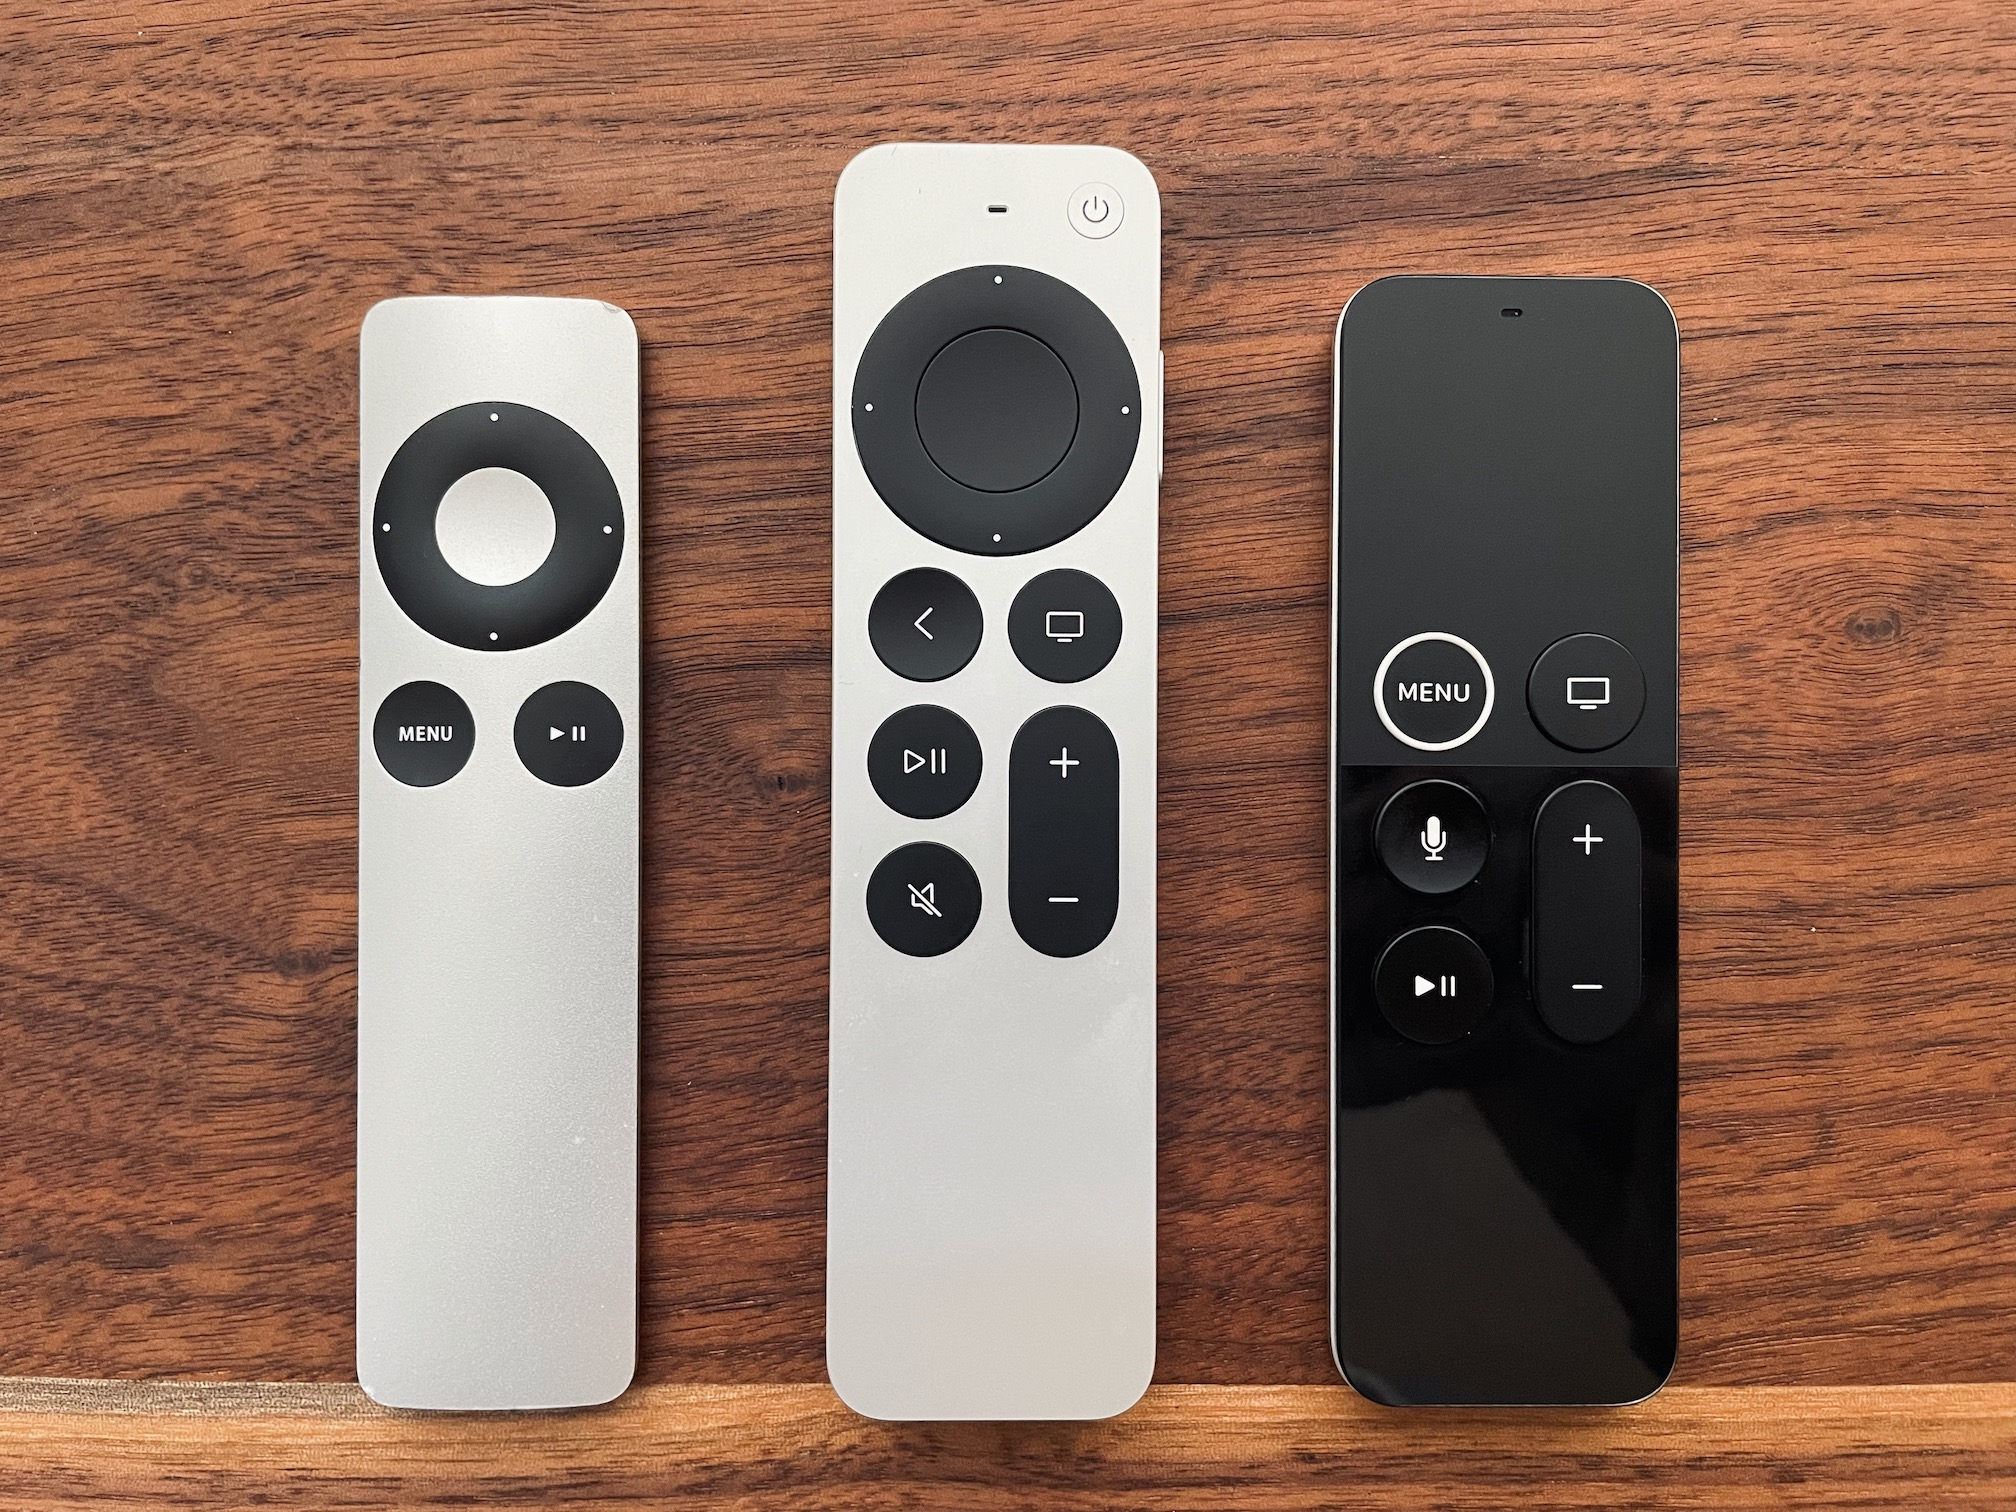 Three generations of Apple TV remotes, side-by-side.